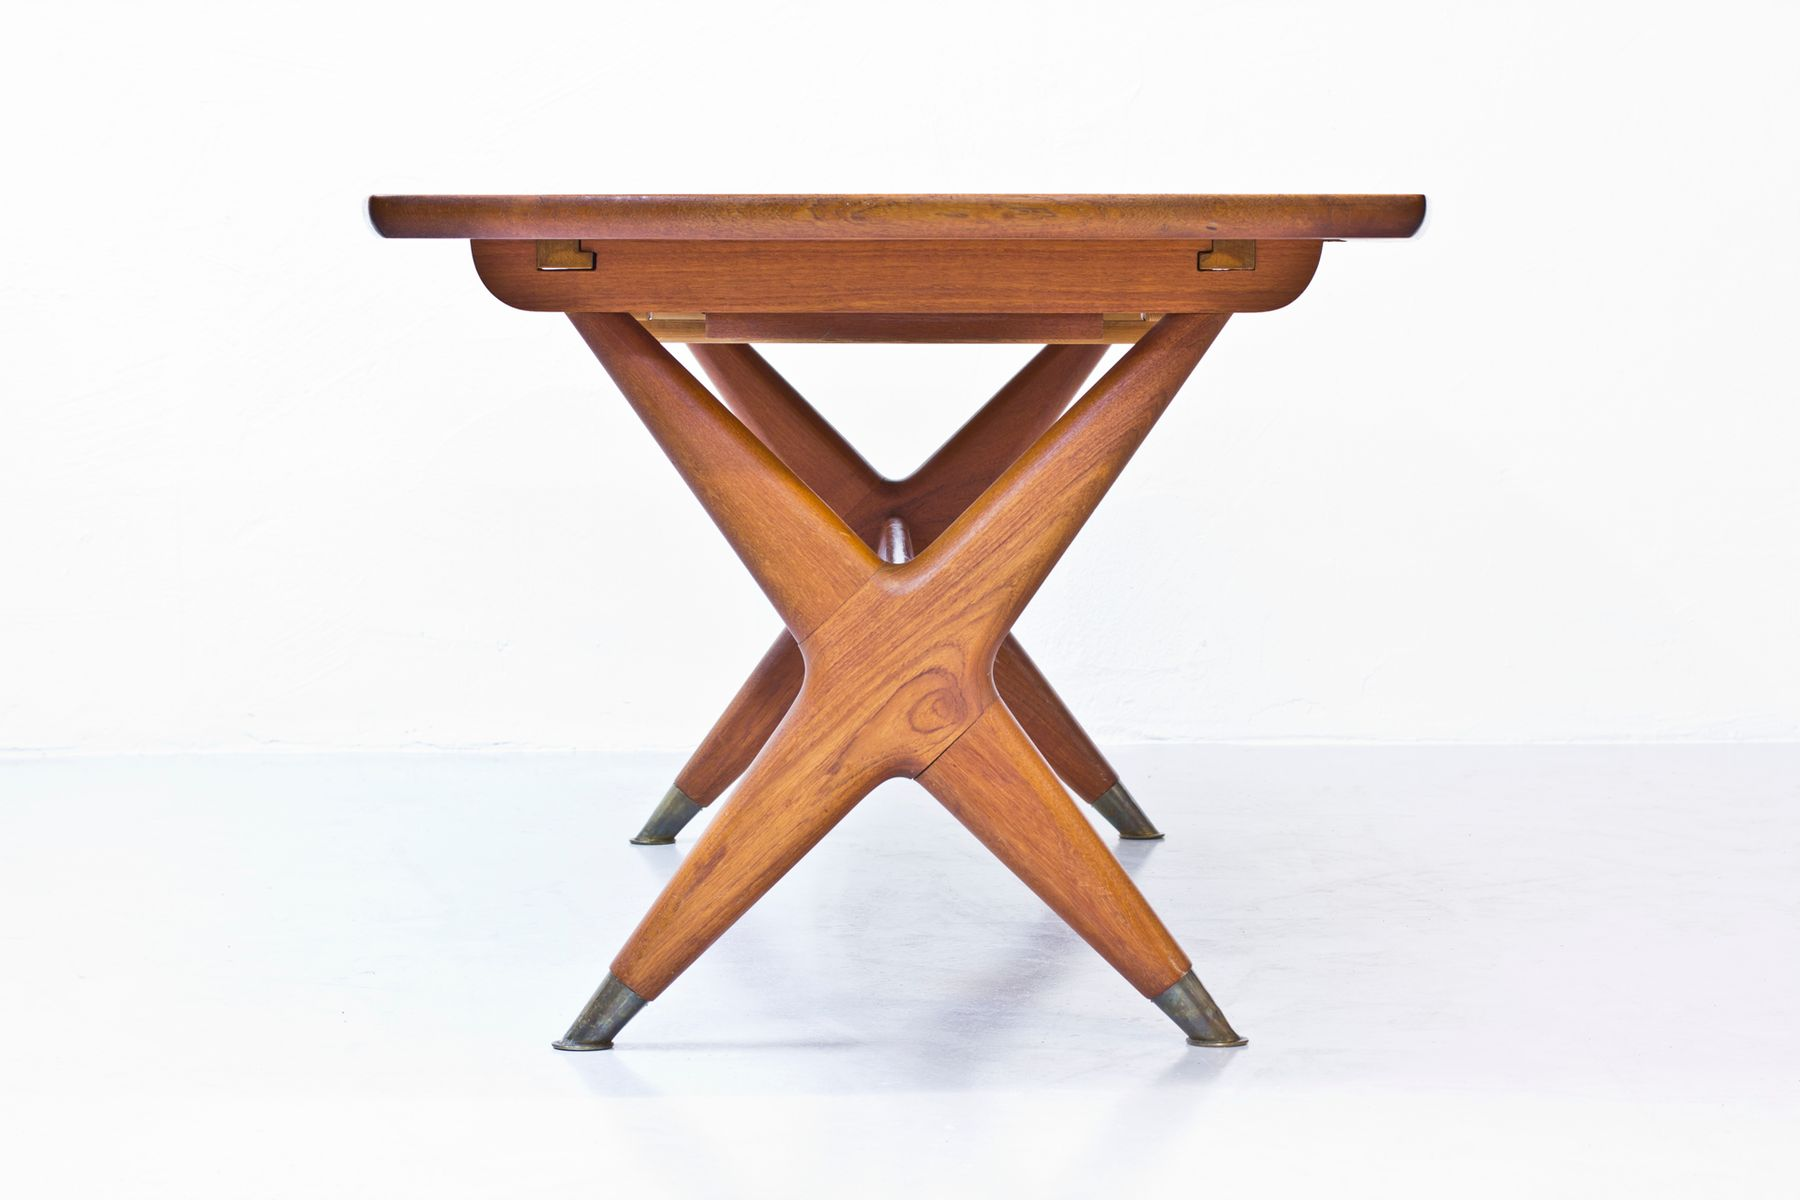 Scandinavian modern dining table by rastad relling for gustav bahus 1953 for sale at pamono - Dining table scandinavian ...